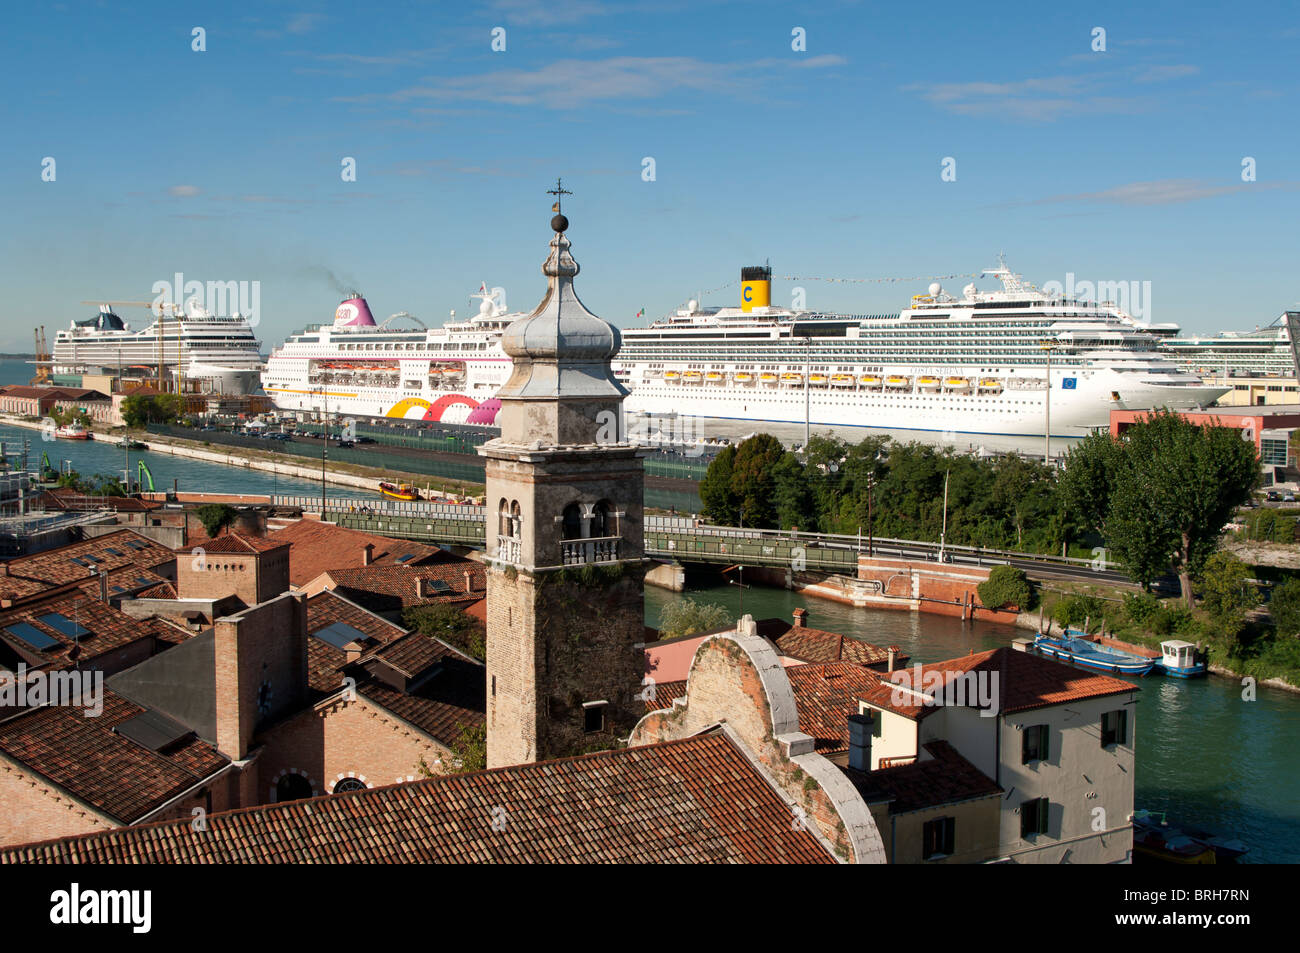 Aerial view on Venice roofs and docked cruisers - Stock Image